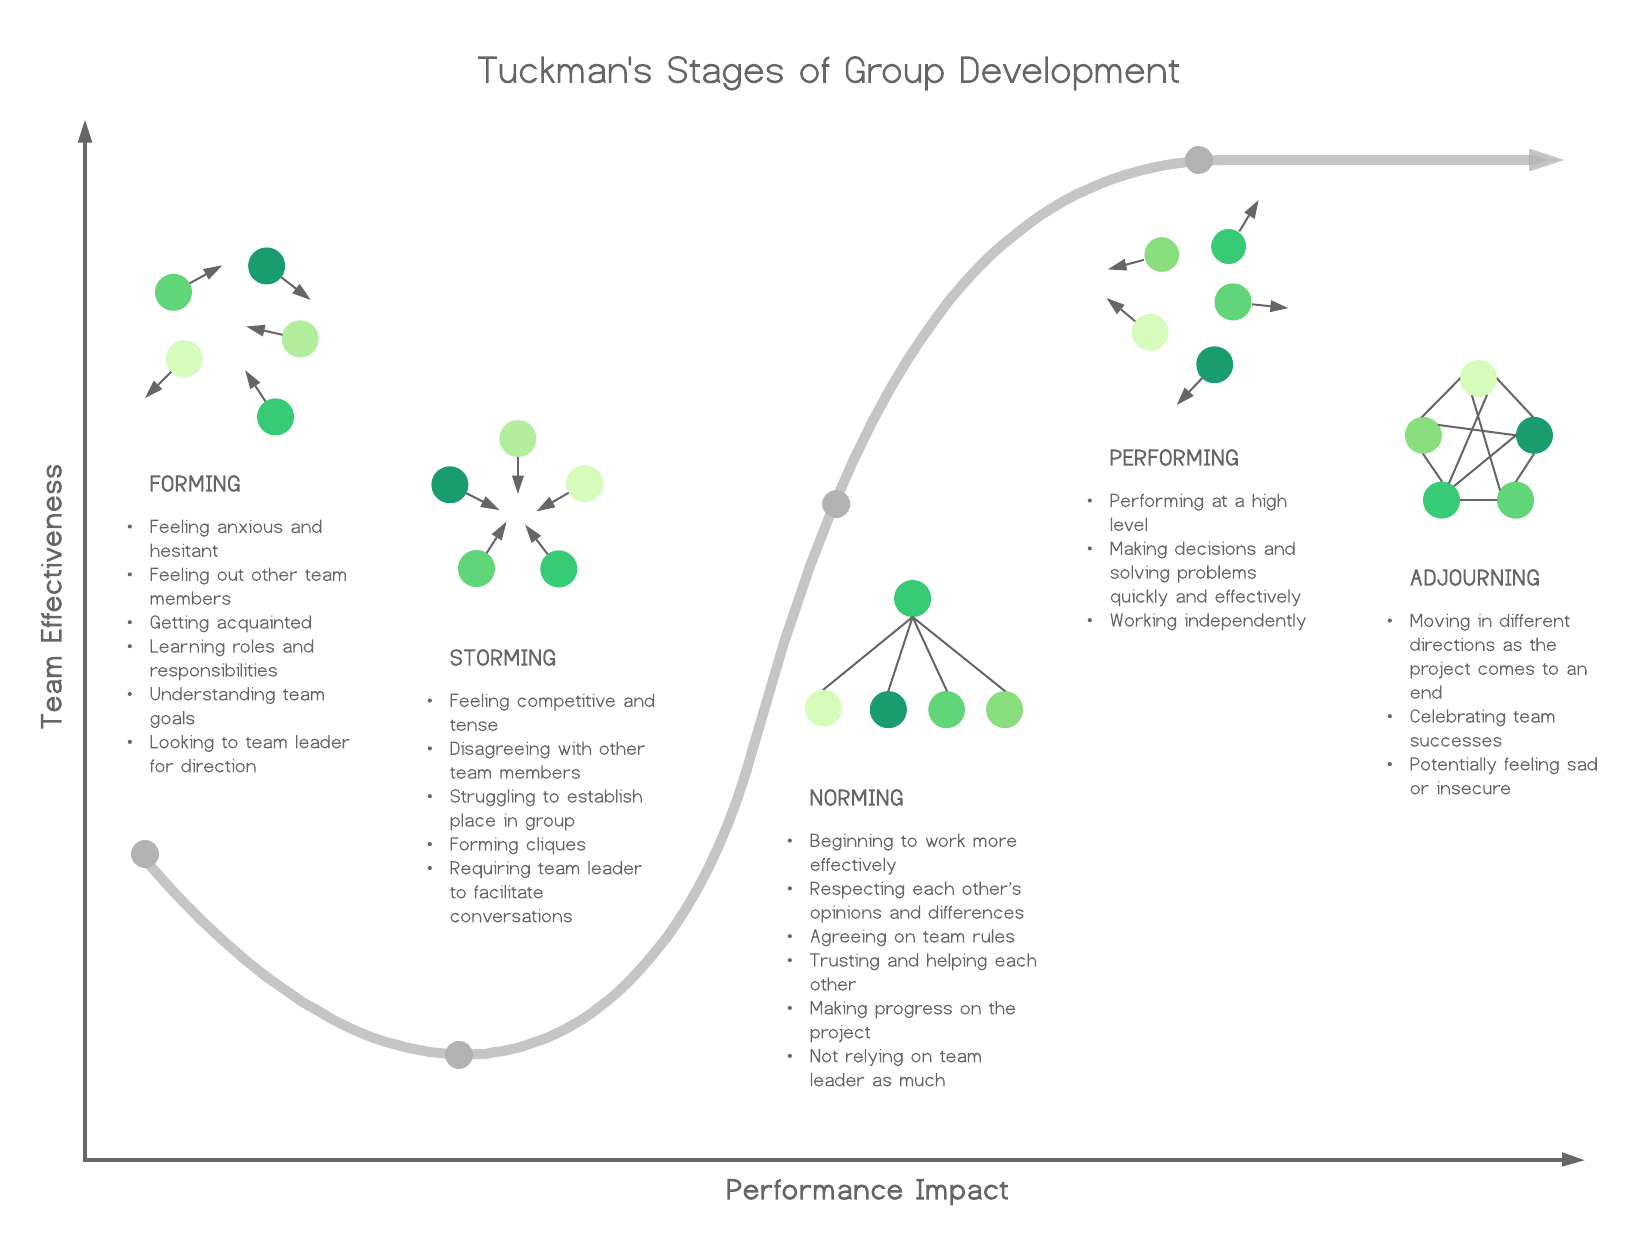 tuckmans-stages-of-group-development